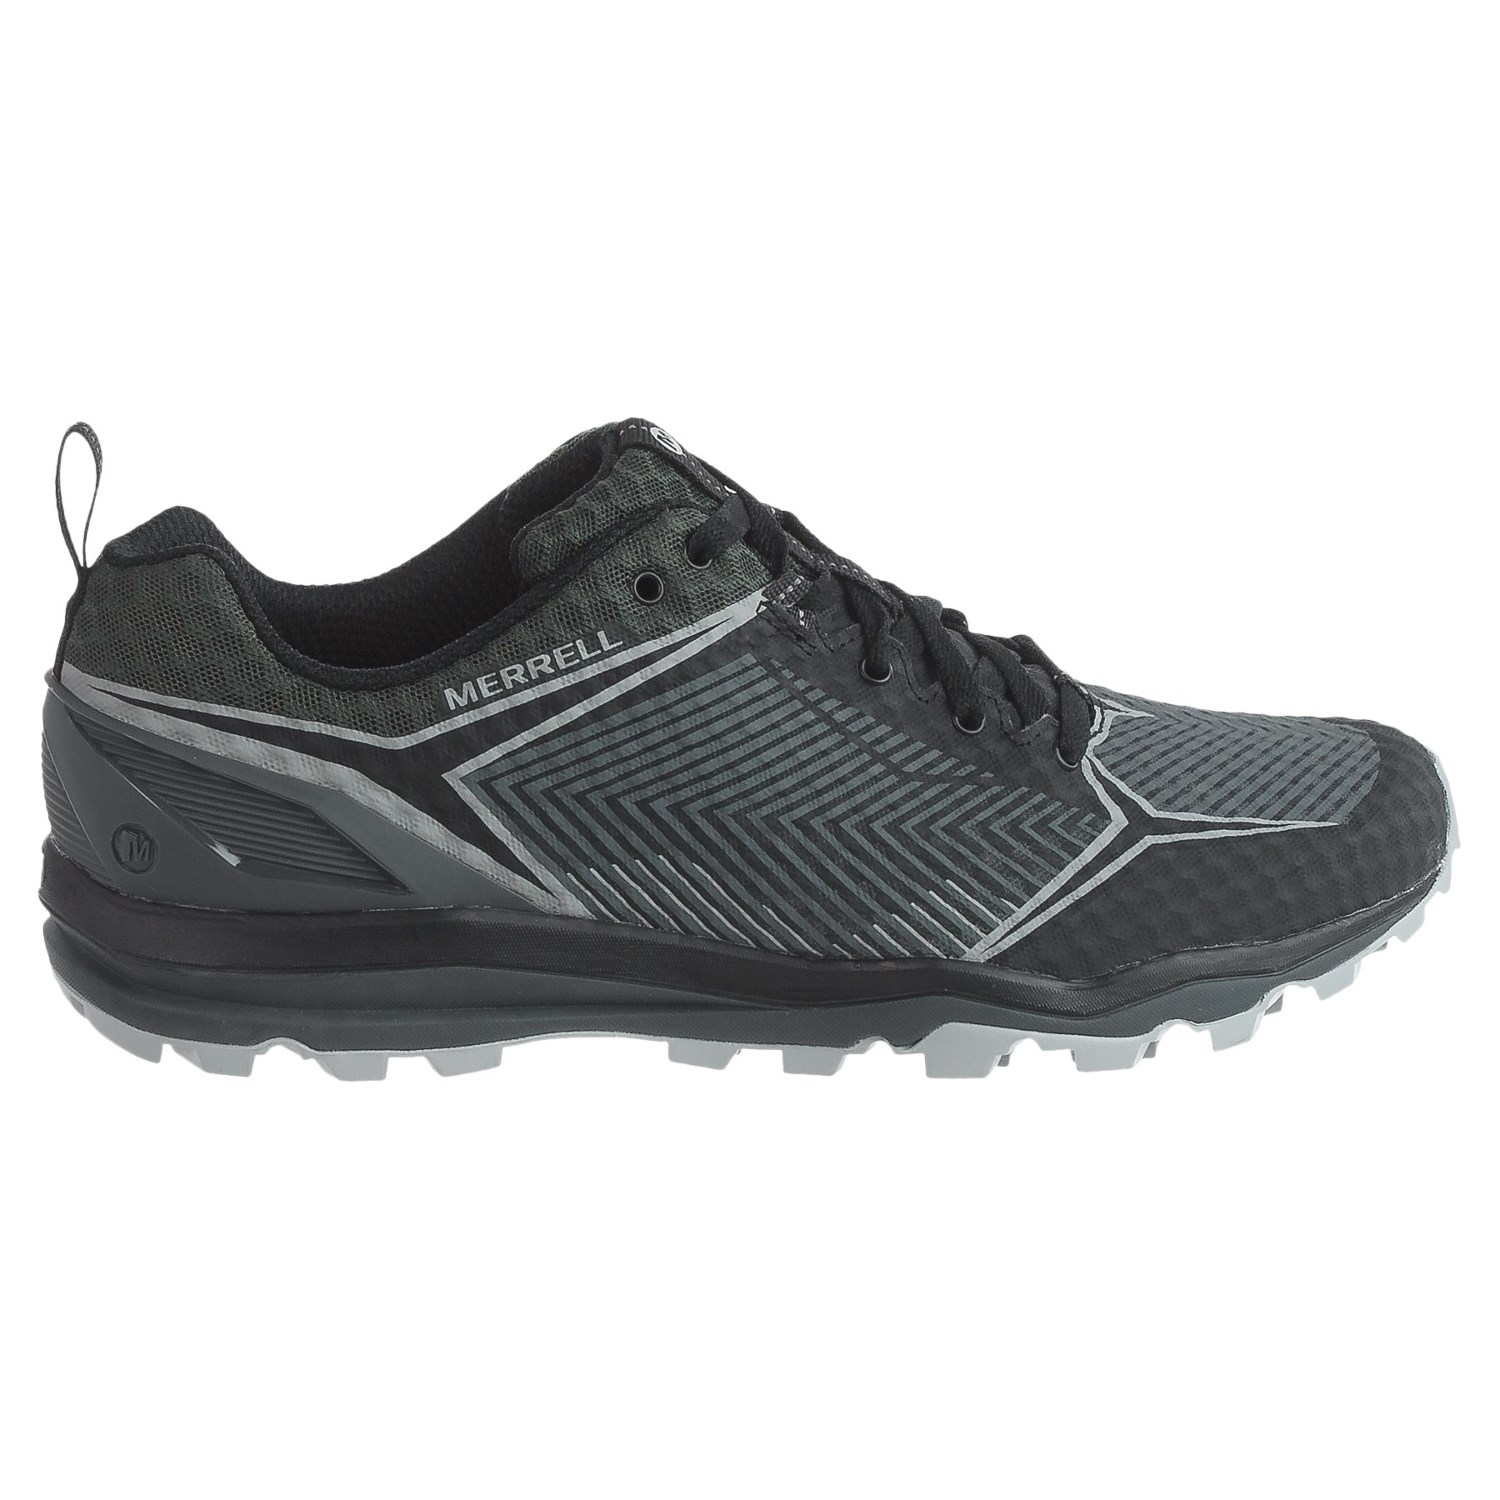 Merrell All Out Crush Shield Trail Running Shoes Reviews